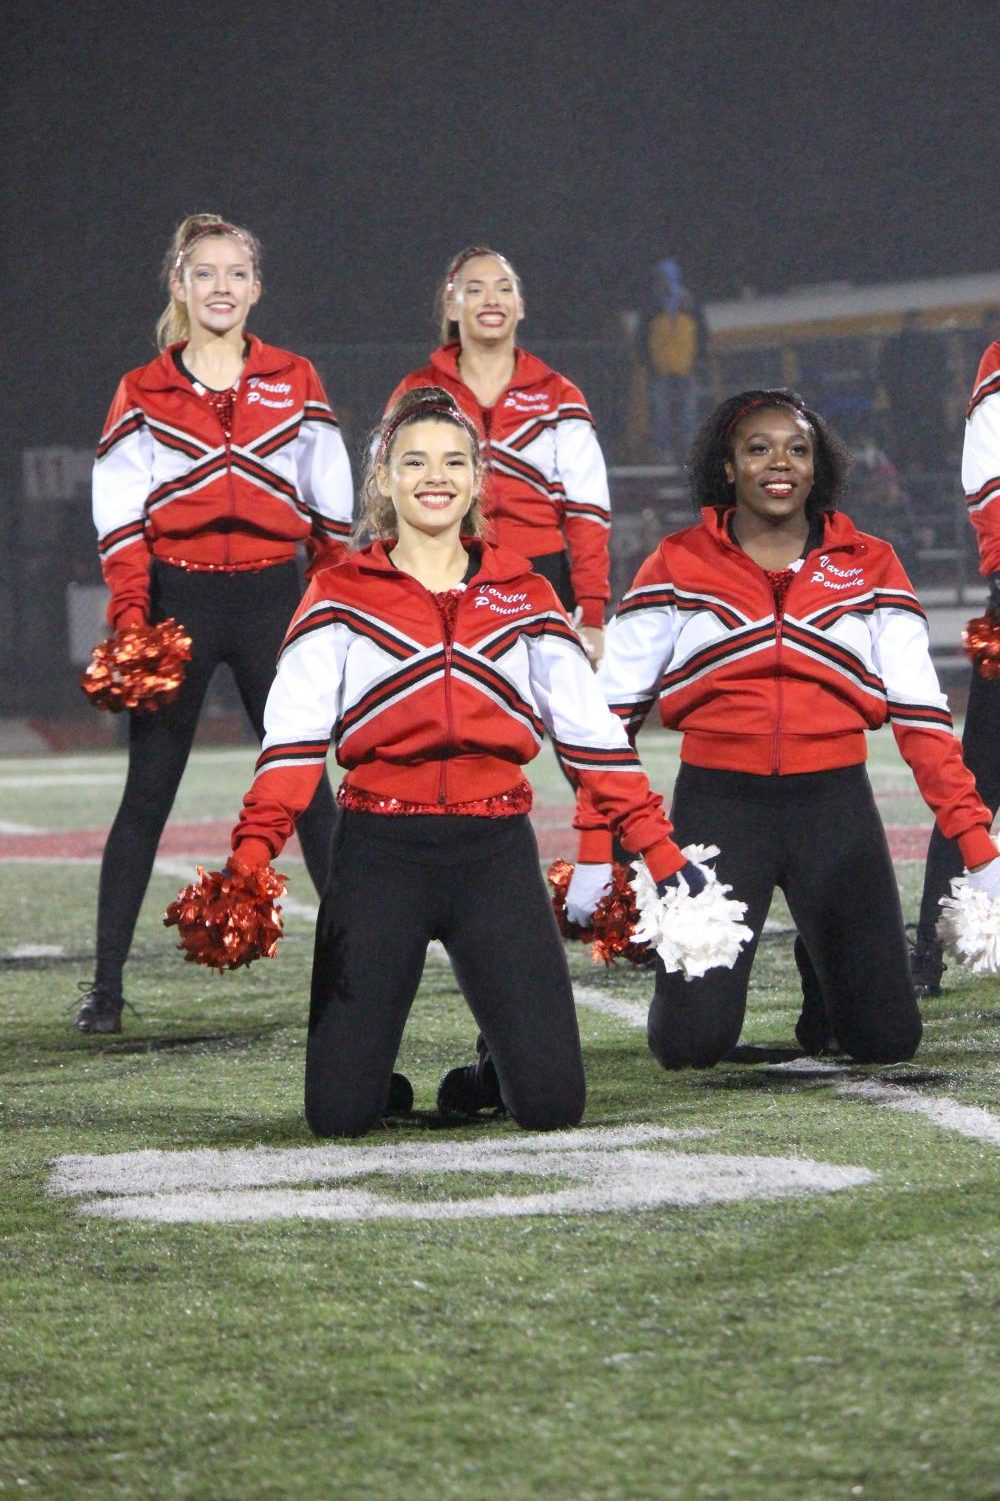 While+the+pommies+performed+their+halftime+show+at+the+boys+varsity+football+game%2C+junior%2C+Sara+Mattingly+strikes+a+pose+Oct+26.